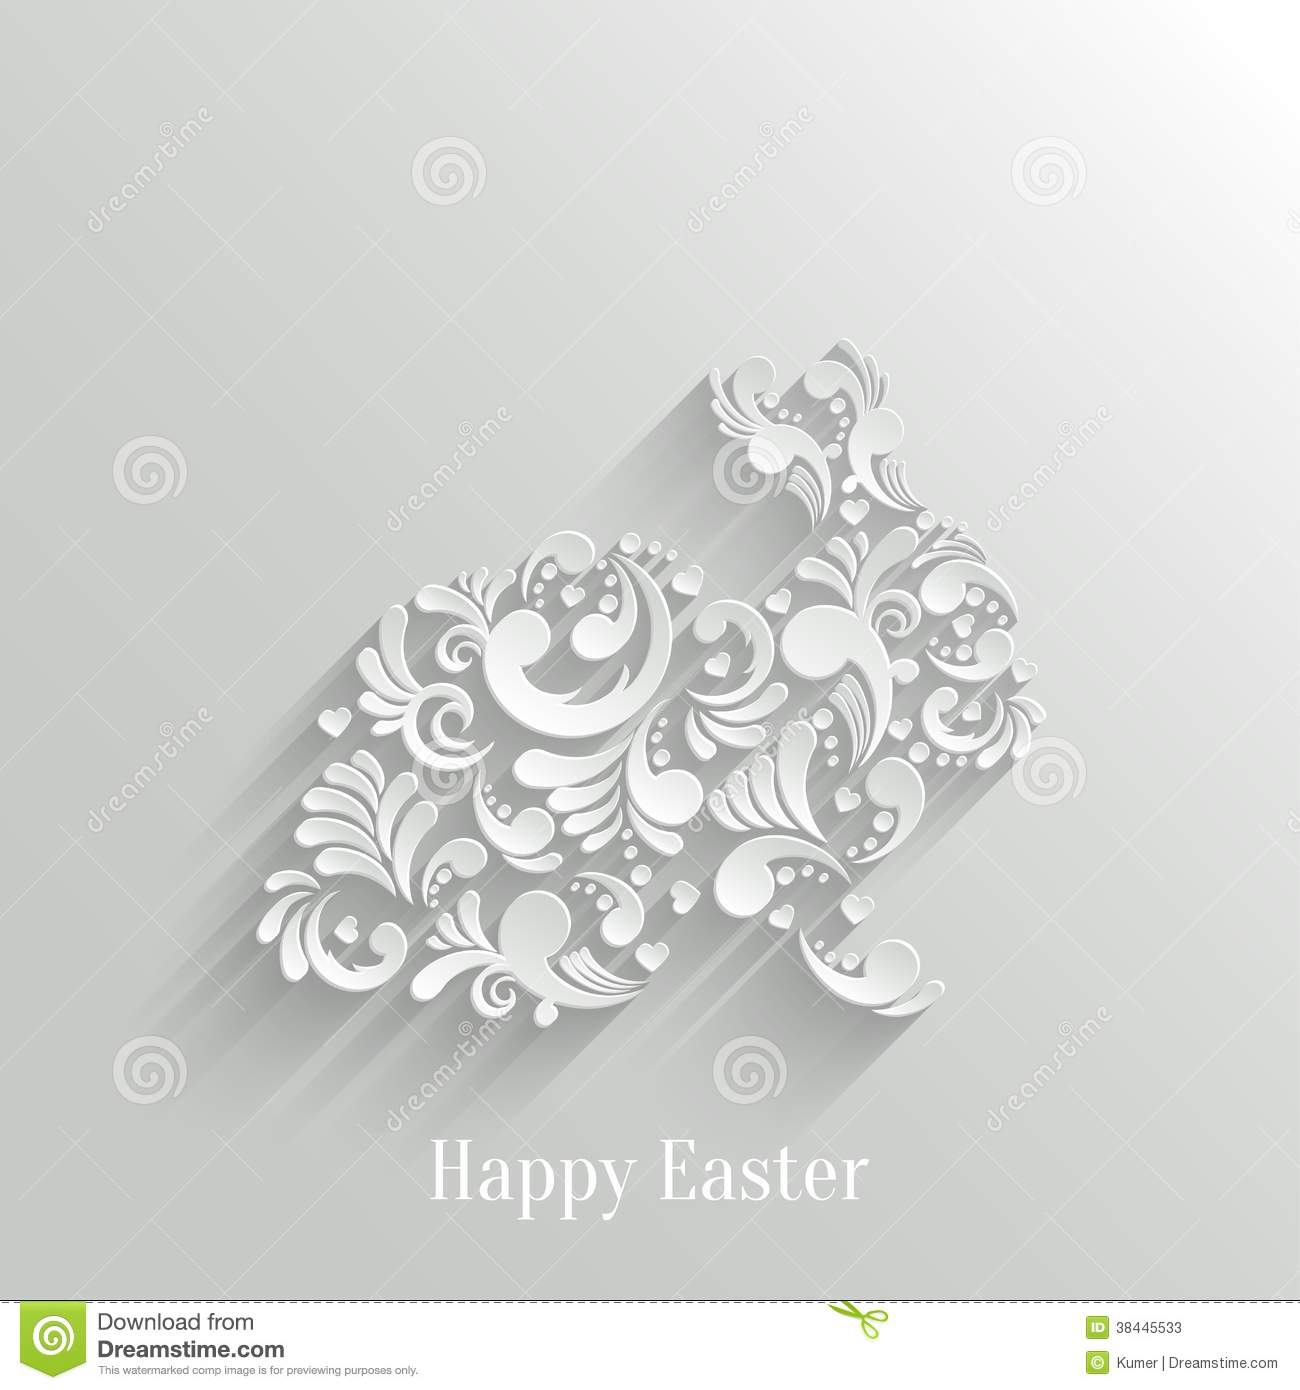 Abstract Background With Floral Easter Rabbit Stock Vector ...